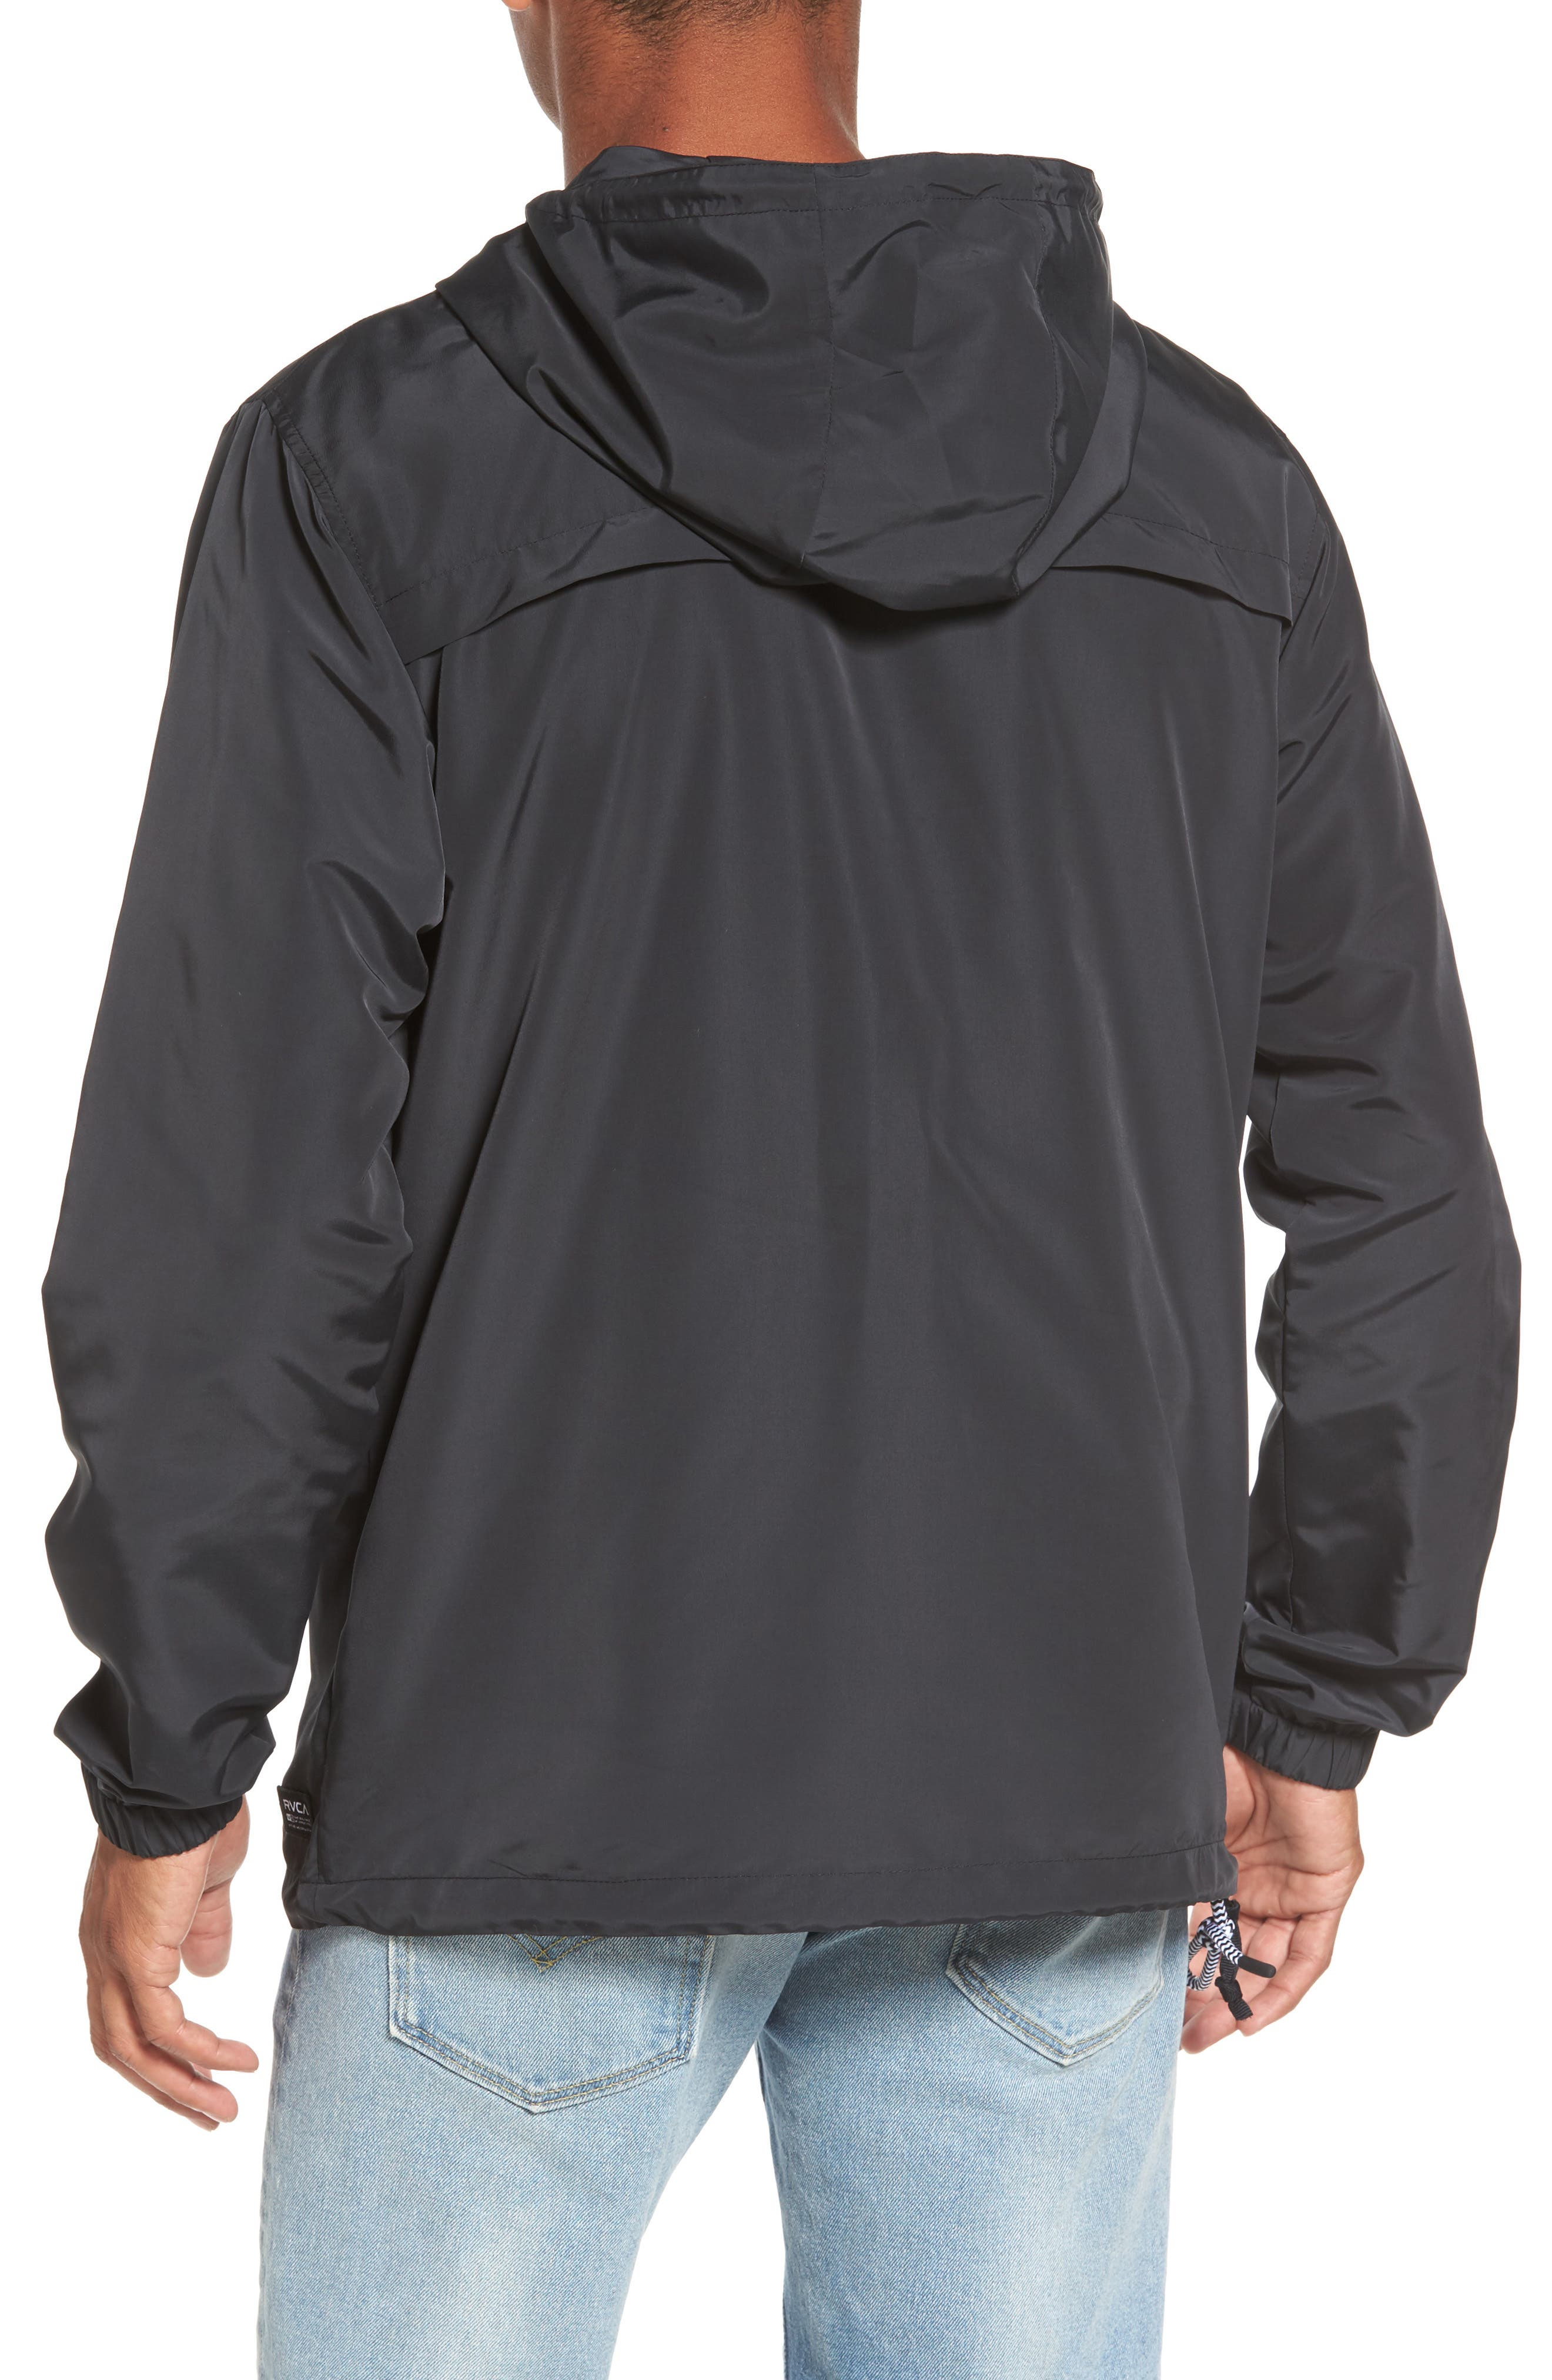 Packaway Hooded Anorak,                             Alternate thumbnail 4, color,